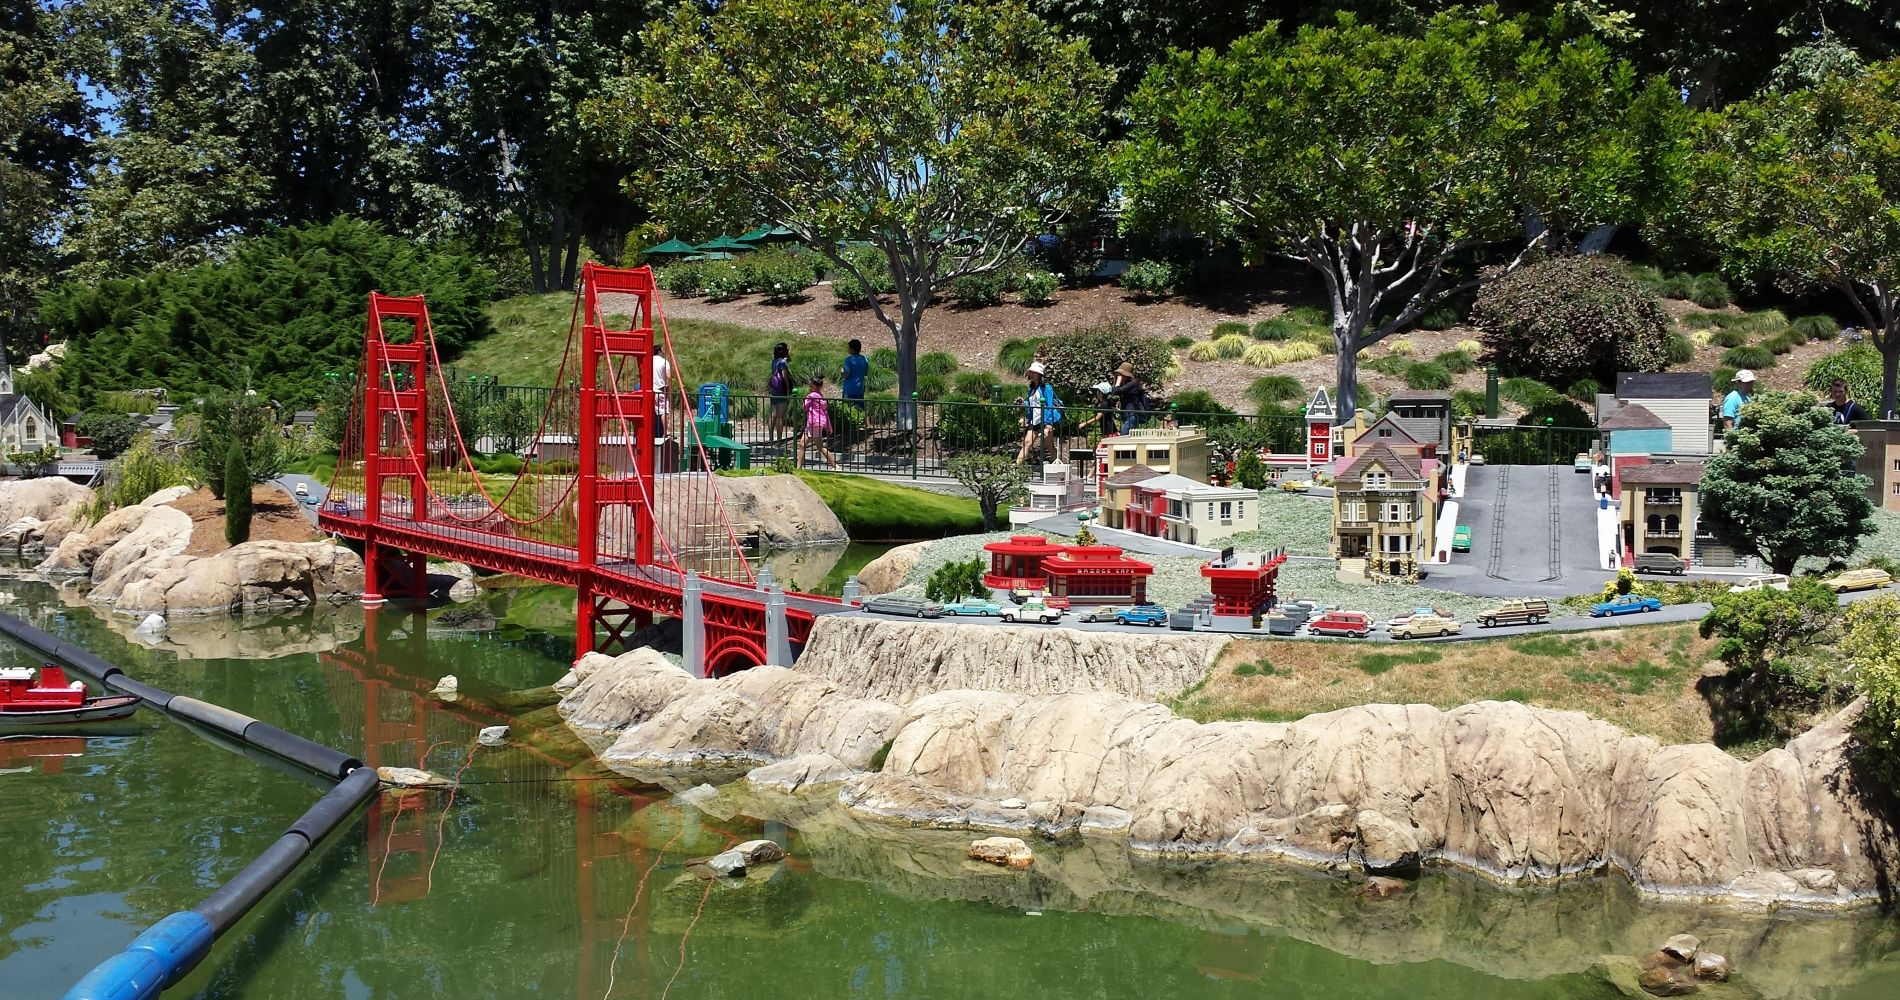 LEGOLAND California and other attractions